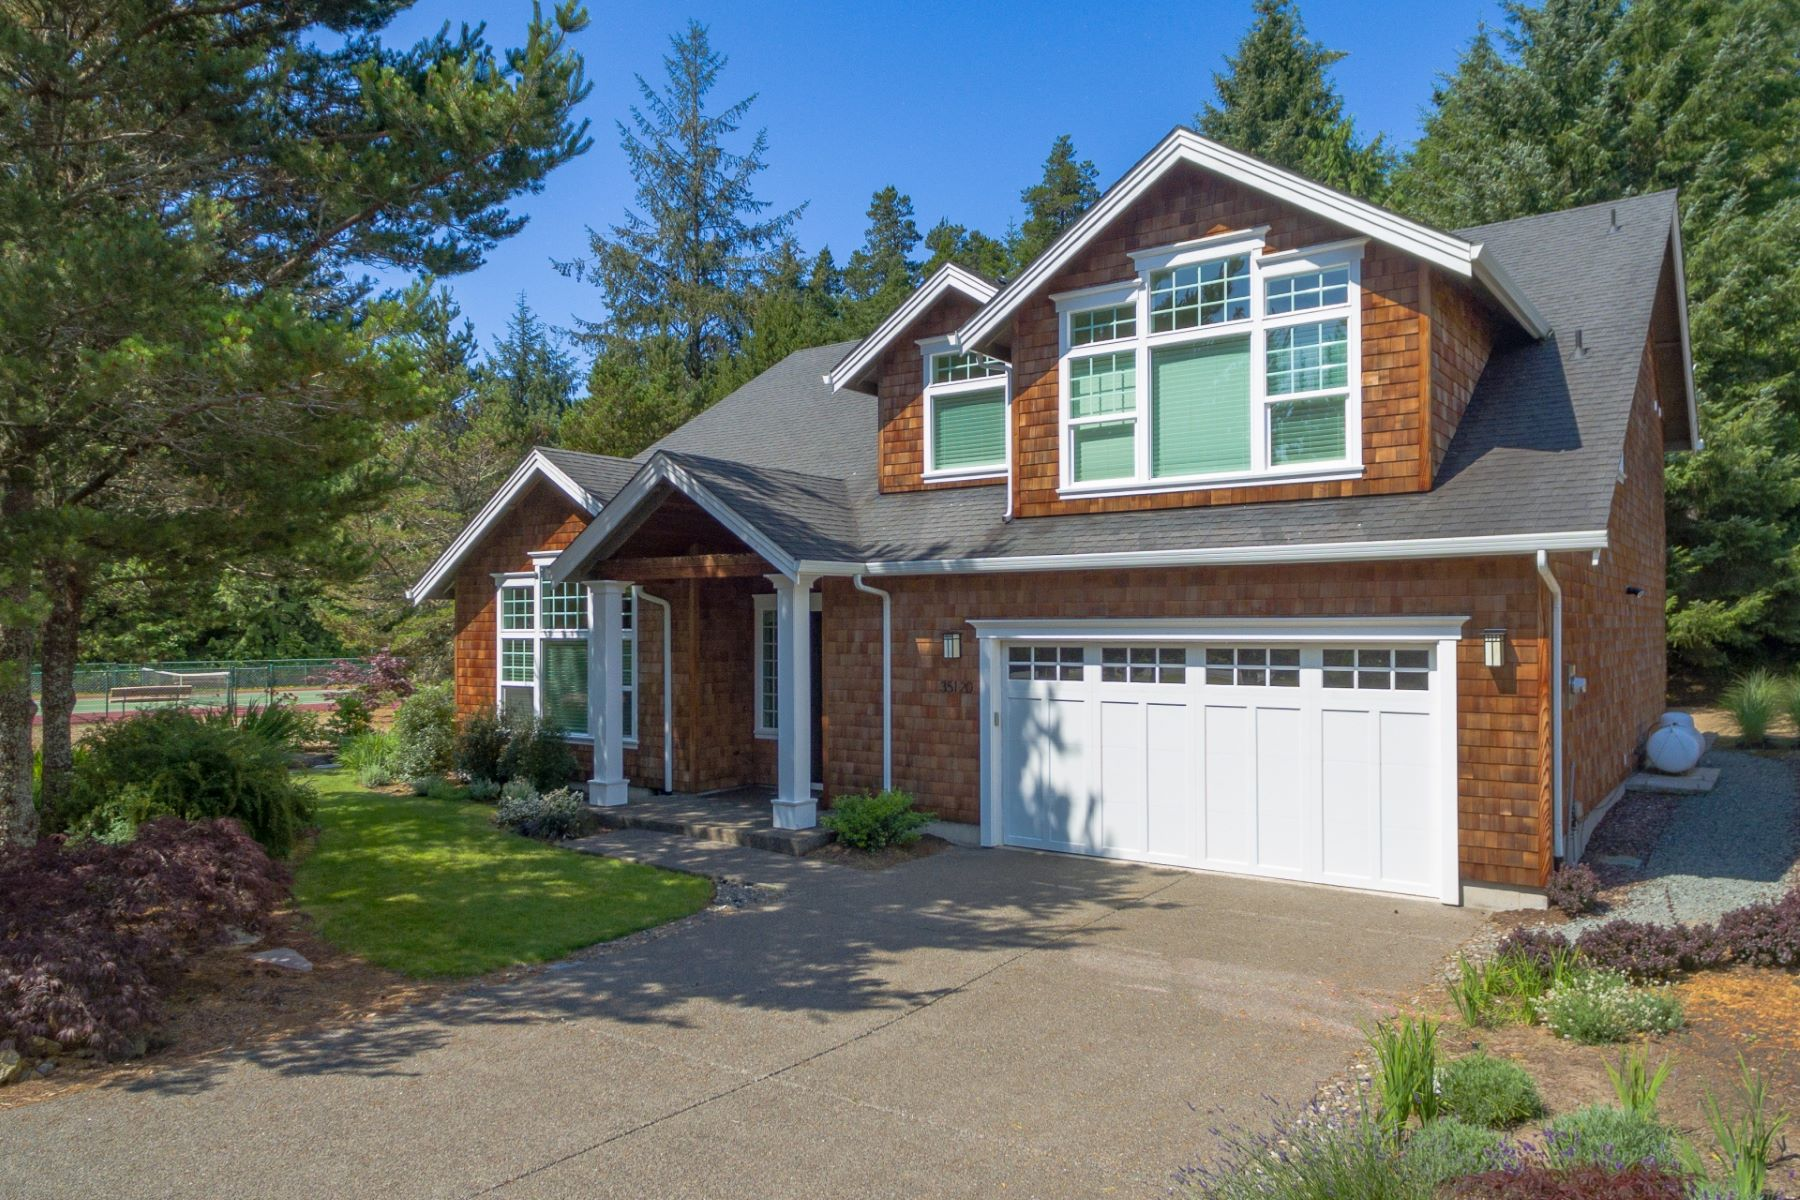 Single Family Homes for Active at Exceptional Pine Ridge Home 35120 Ponderosa Loop Manzanita, Oregon 97130 United States